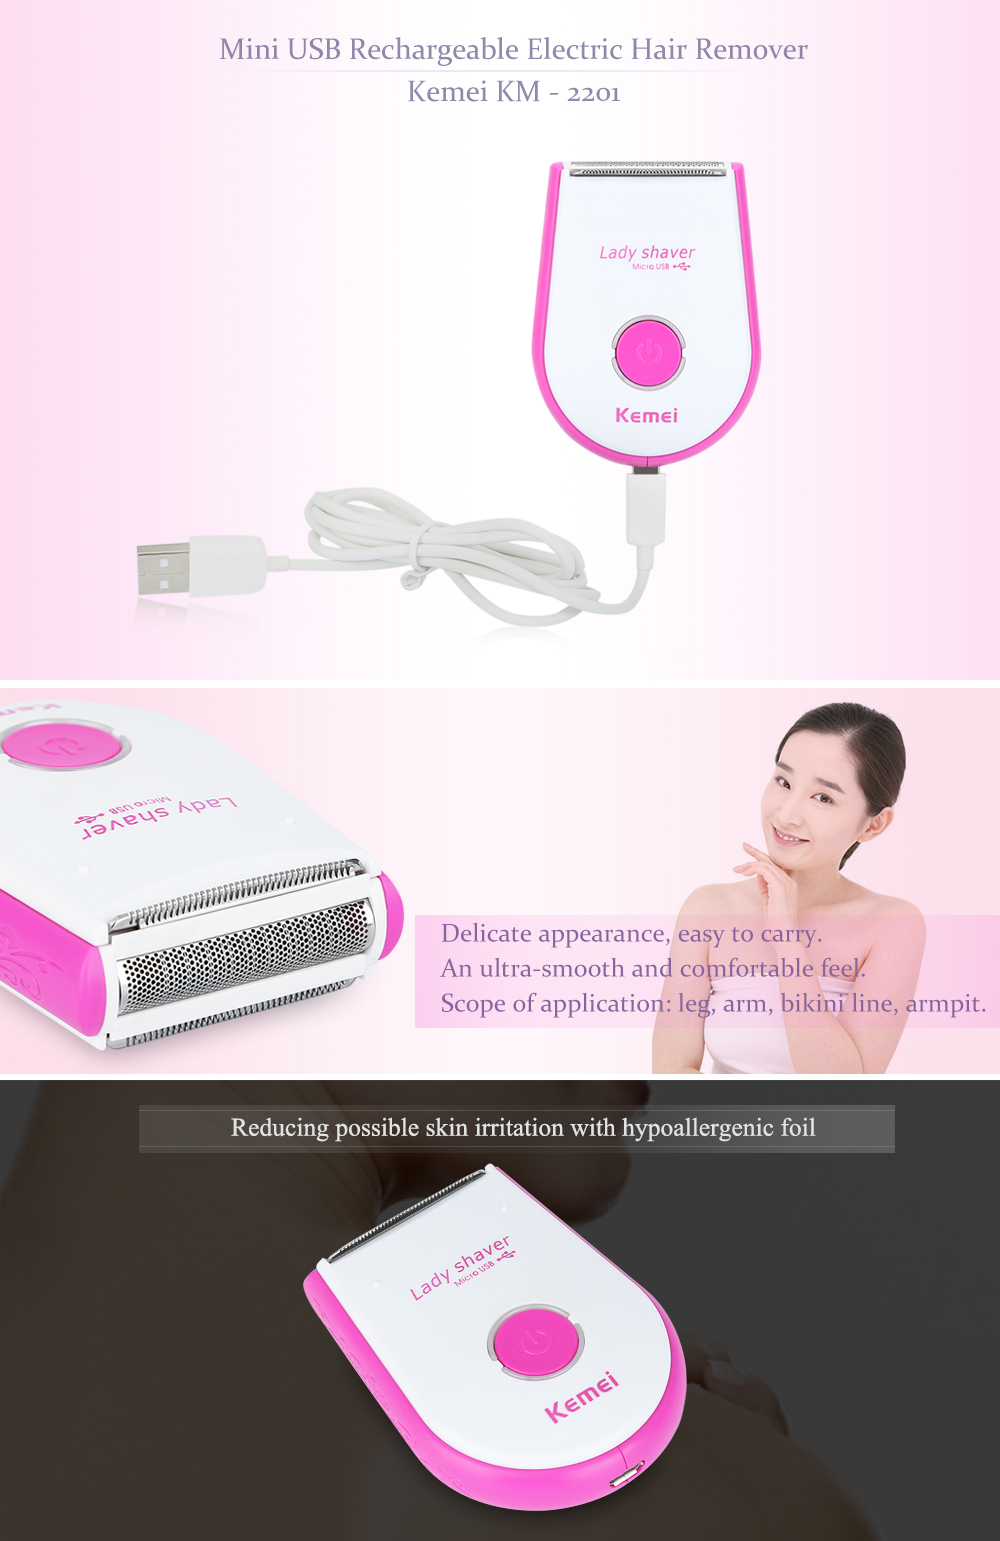 Kemei KM - 2201 Mini Rechargeable USB Electric Skin-friendly Hair Remover Shaver